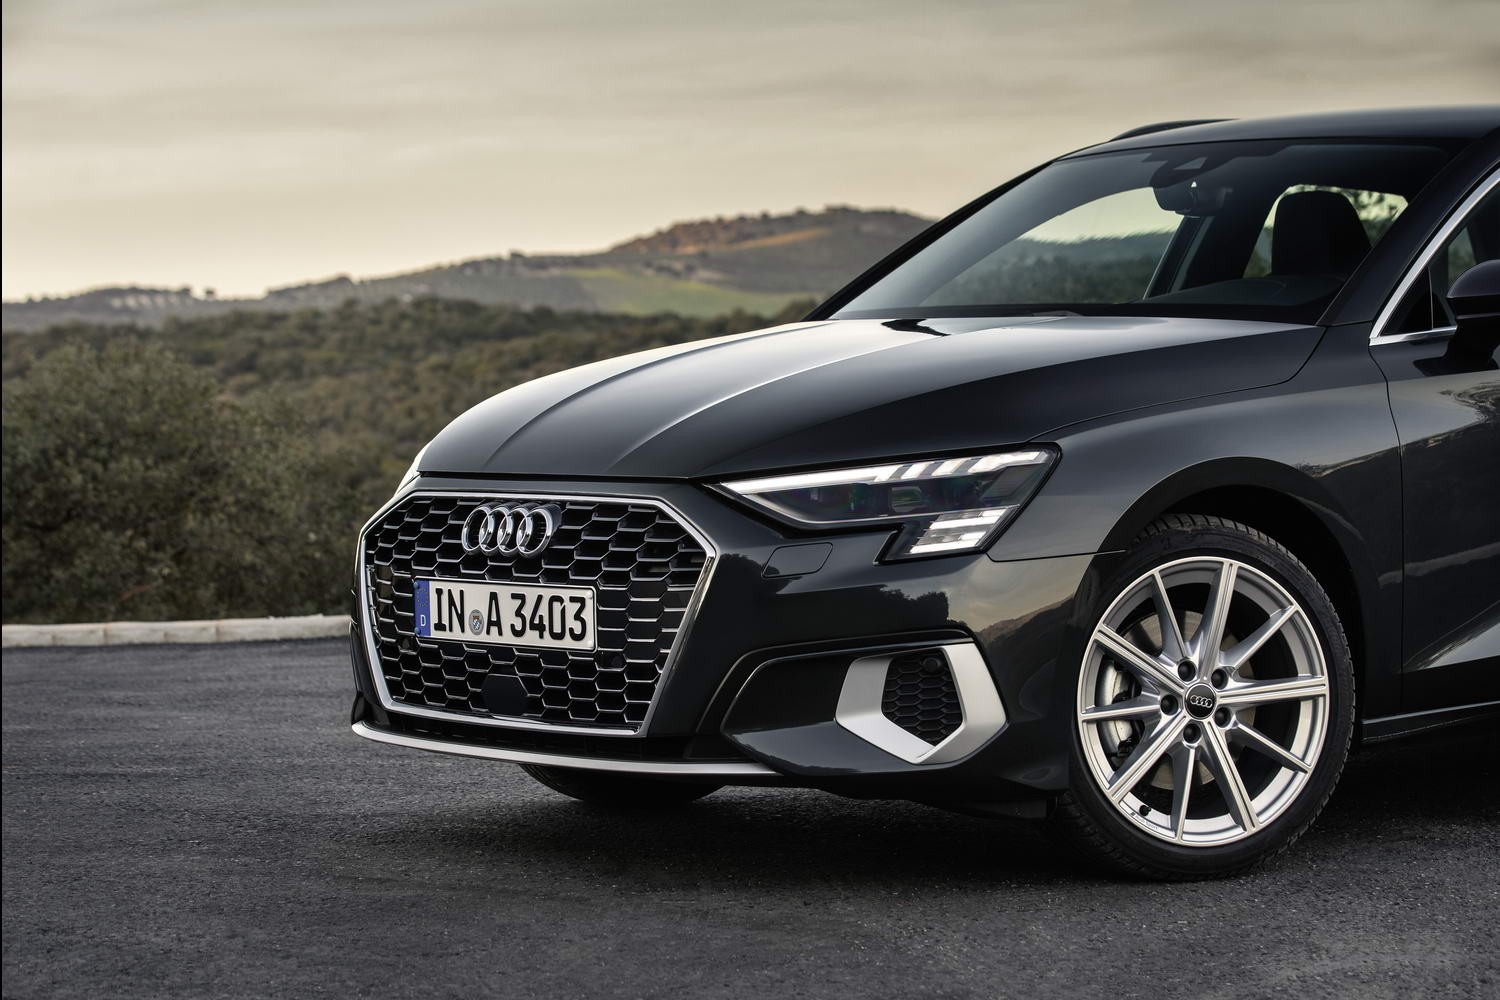 Audi A3 Sportback 35 TFSI MHEV (2020) | Reviews | Complete Car